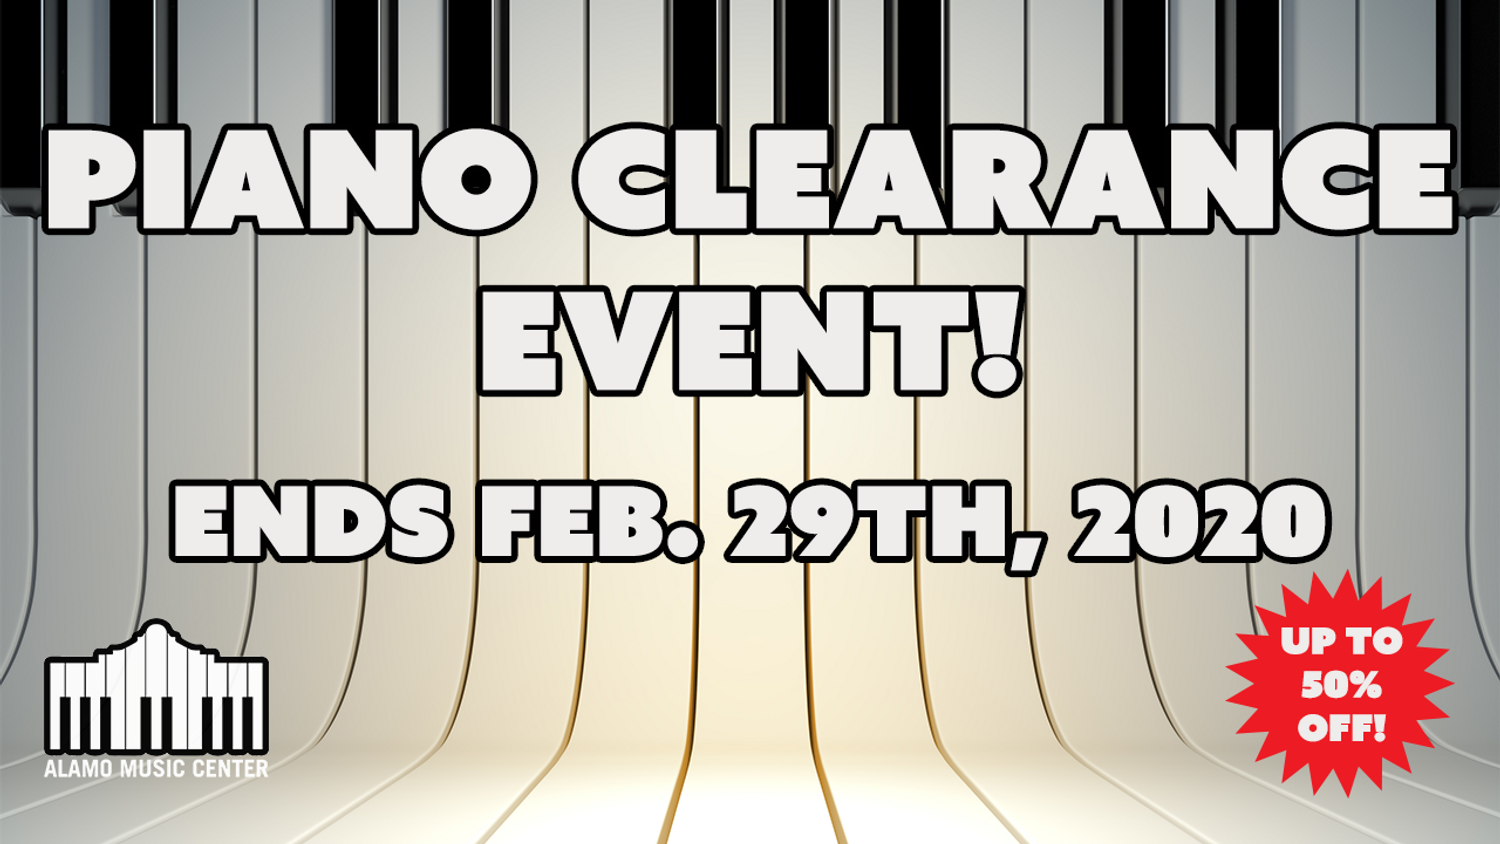 Piano Clearance Event: Ends Feb 29th 2020 - Up to 50% Off!